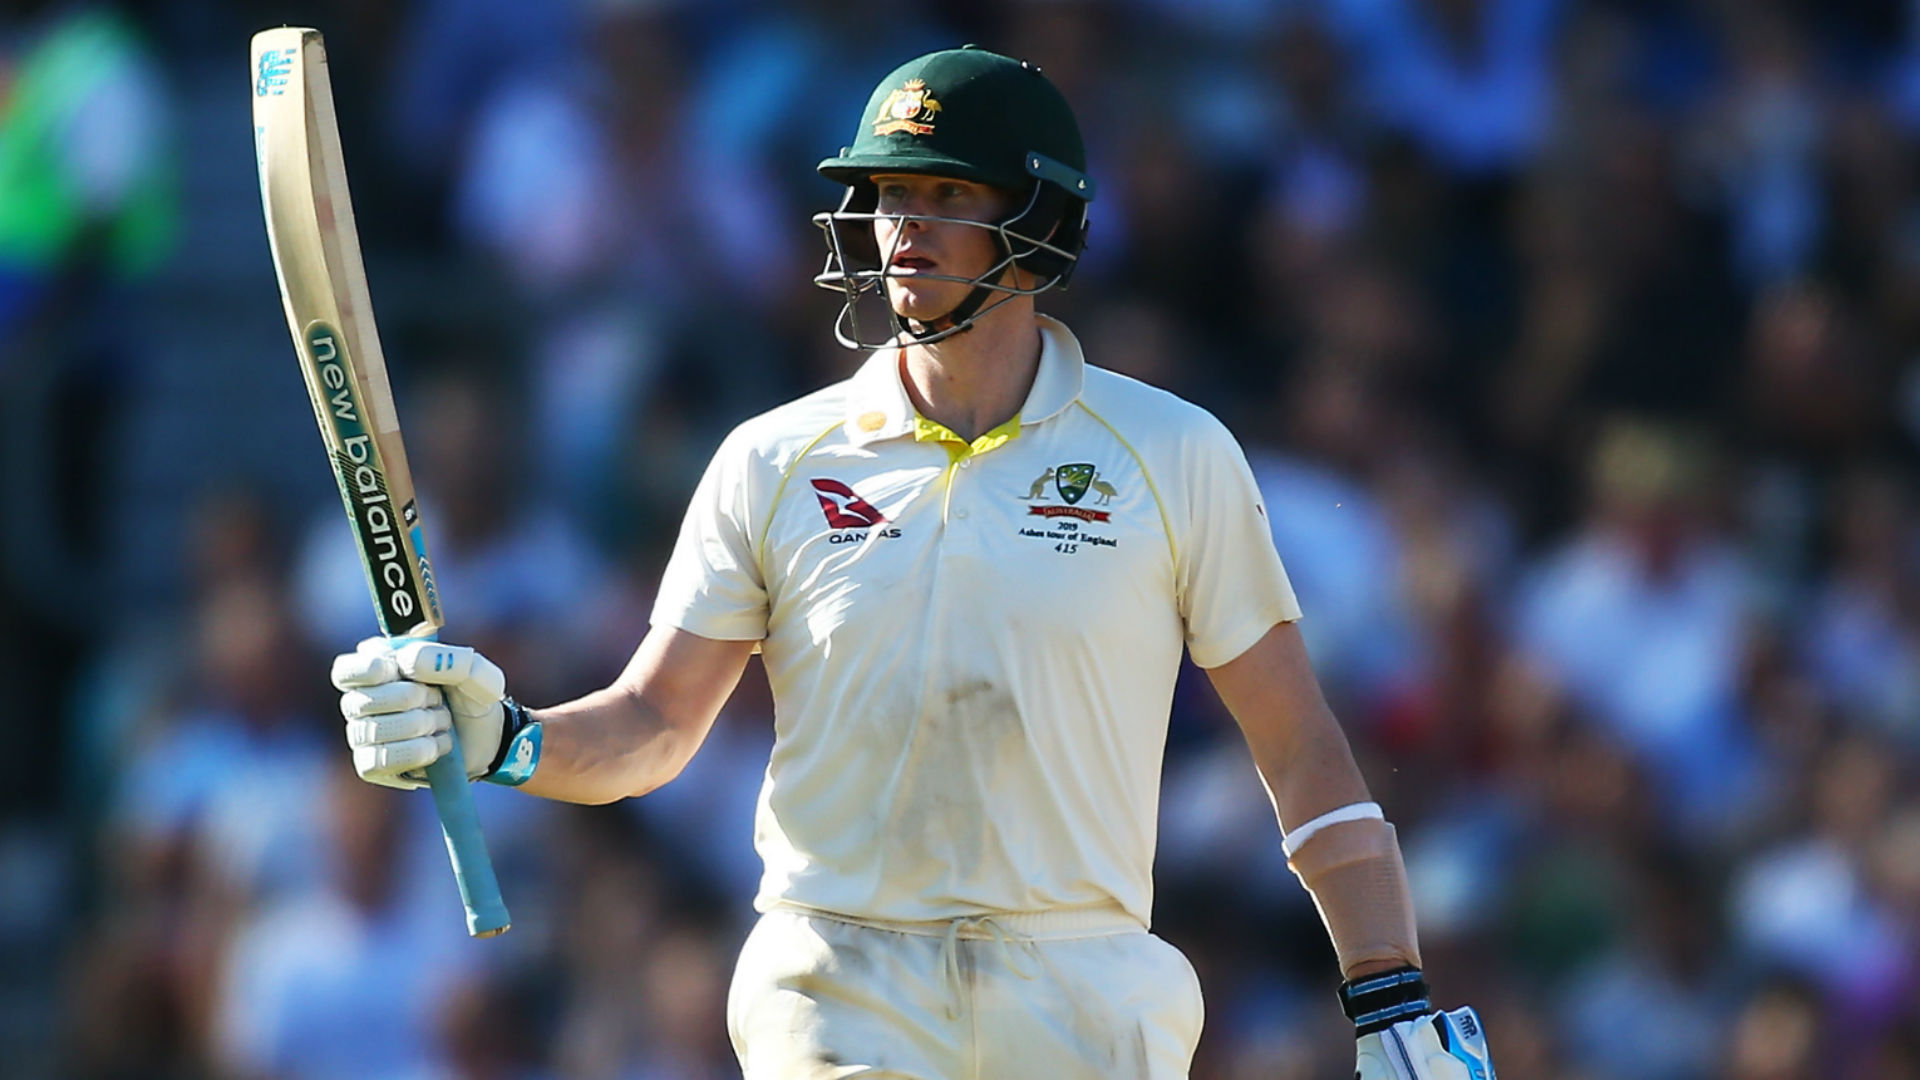 Ashes 2019: Another half-century for Smith but England make inroads